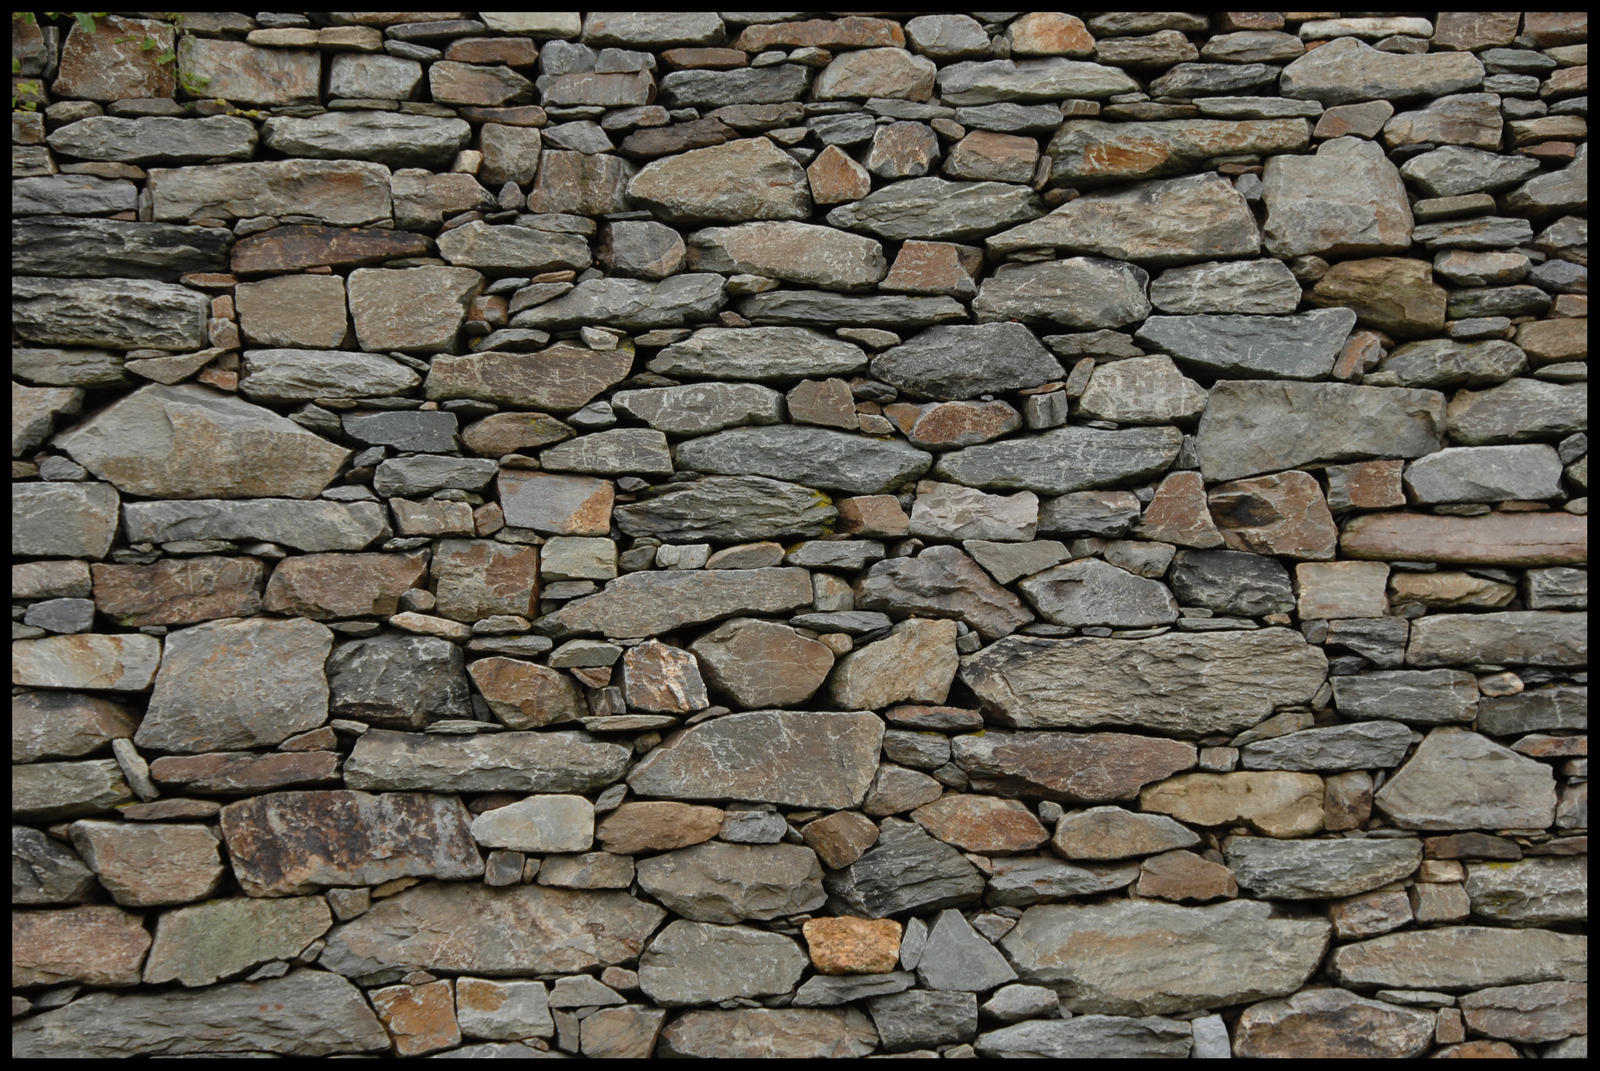 Http Chriswellner Deviantart Com Art Old Stone Wall 2 Harpers Ferry 109057029